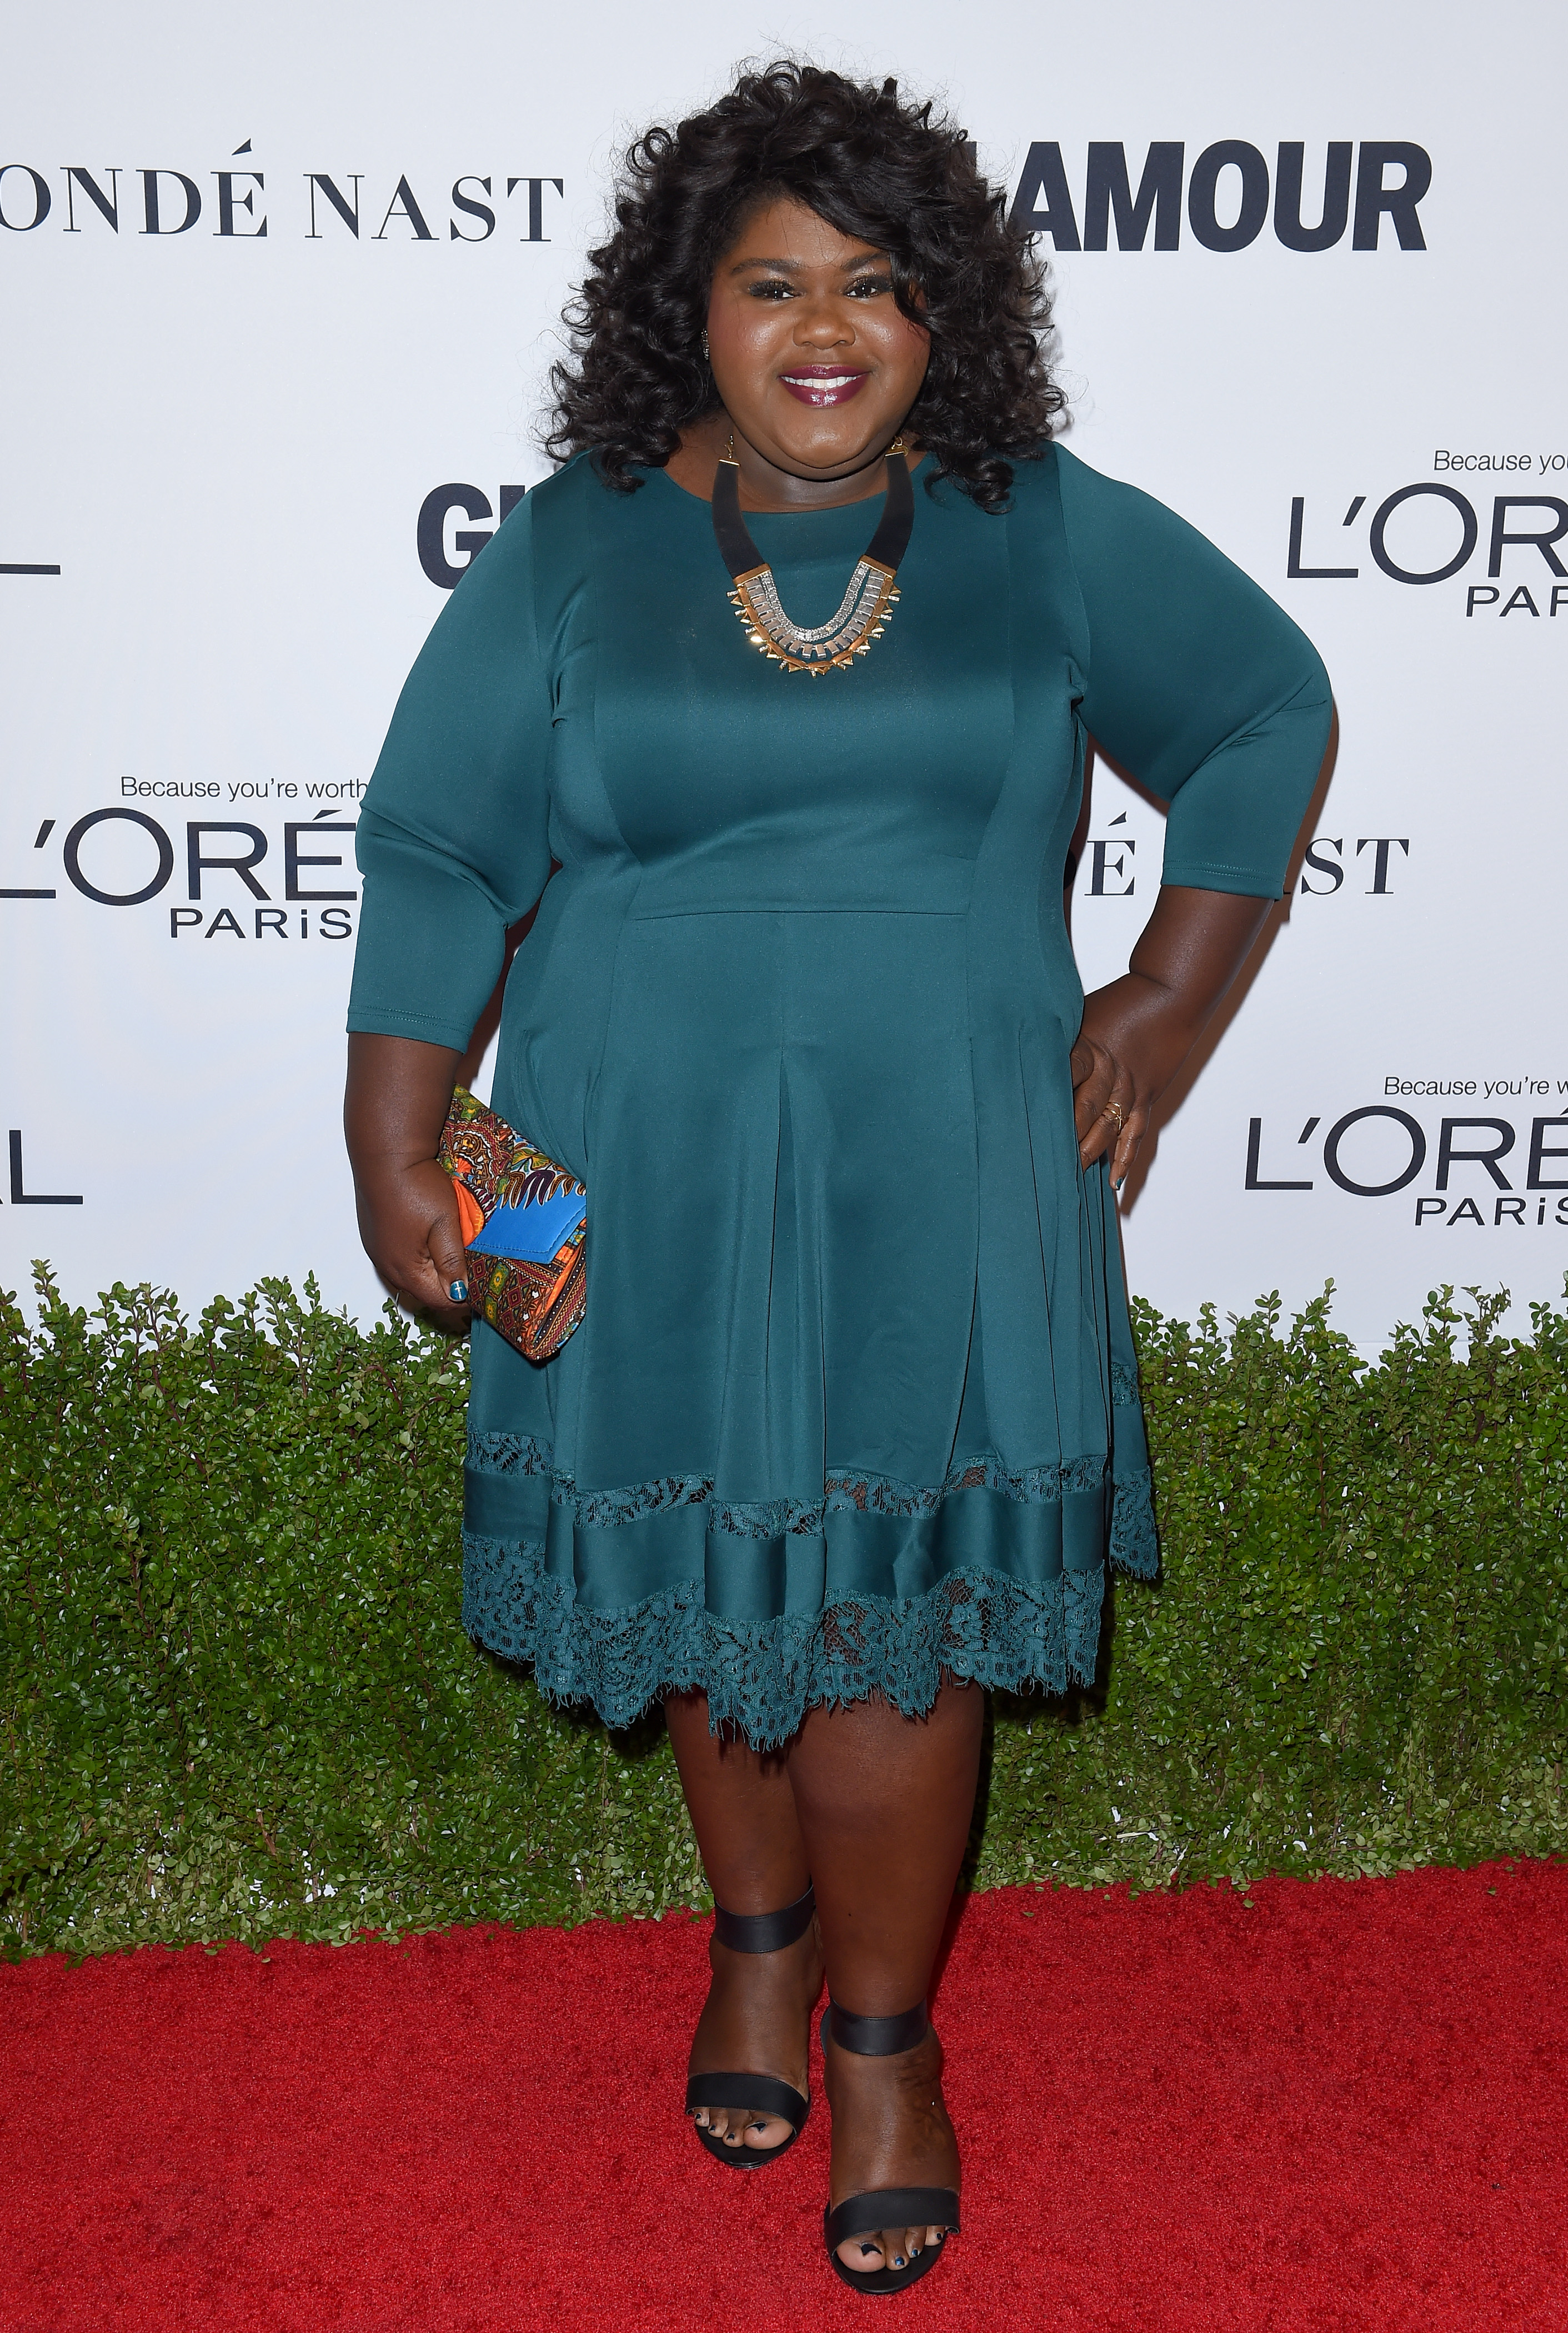 LOS ANGELES, CA - NOVEMBER 14:  Actress Gabourey Sidibe arrives at Glamour Women of the Year 2016 at NeueHouse Hollywood on November 14, 2016 in Los Angeles, California.  (Photo by Axelle/Bauer-Griffin/FilmMagic)